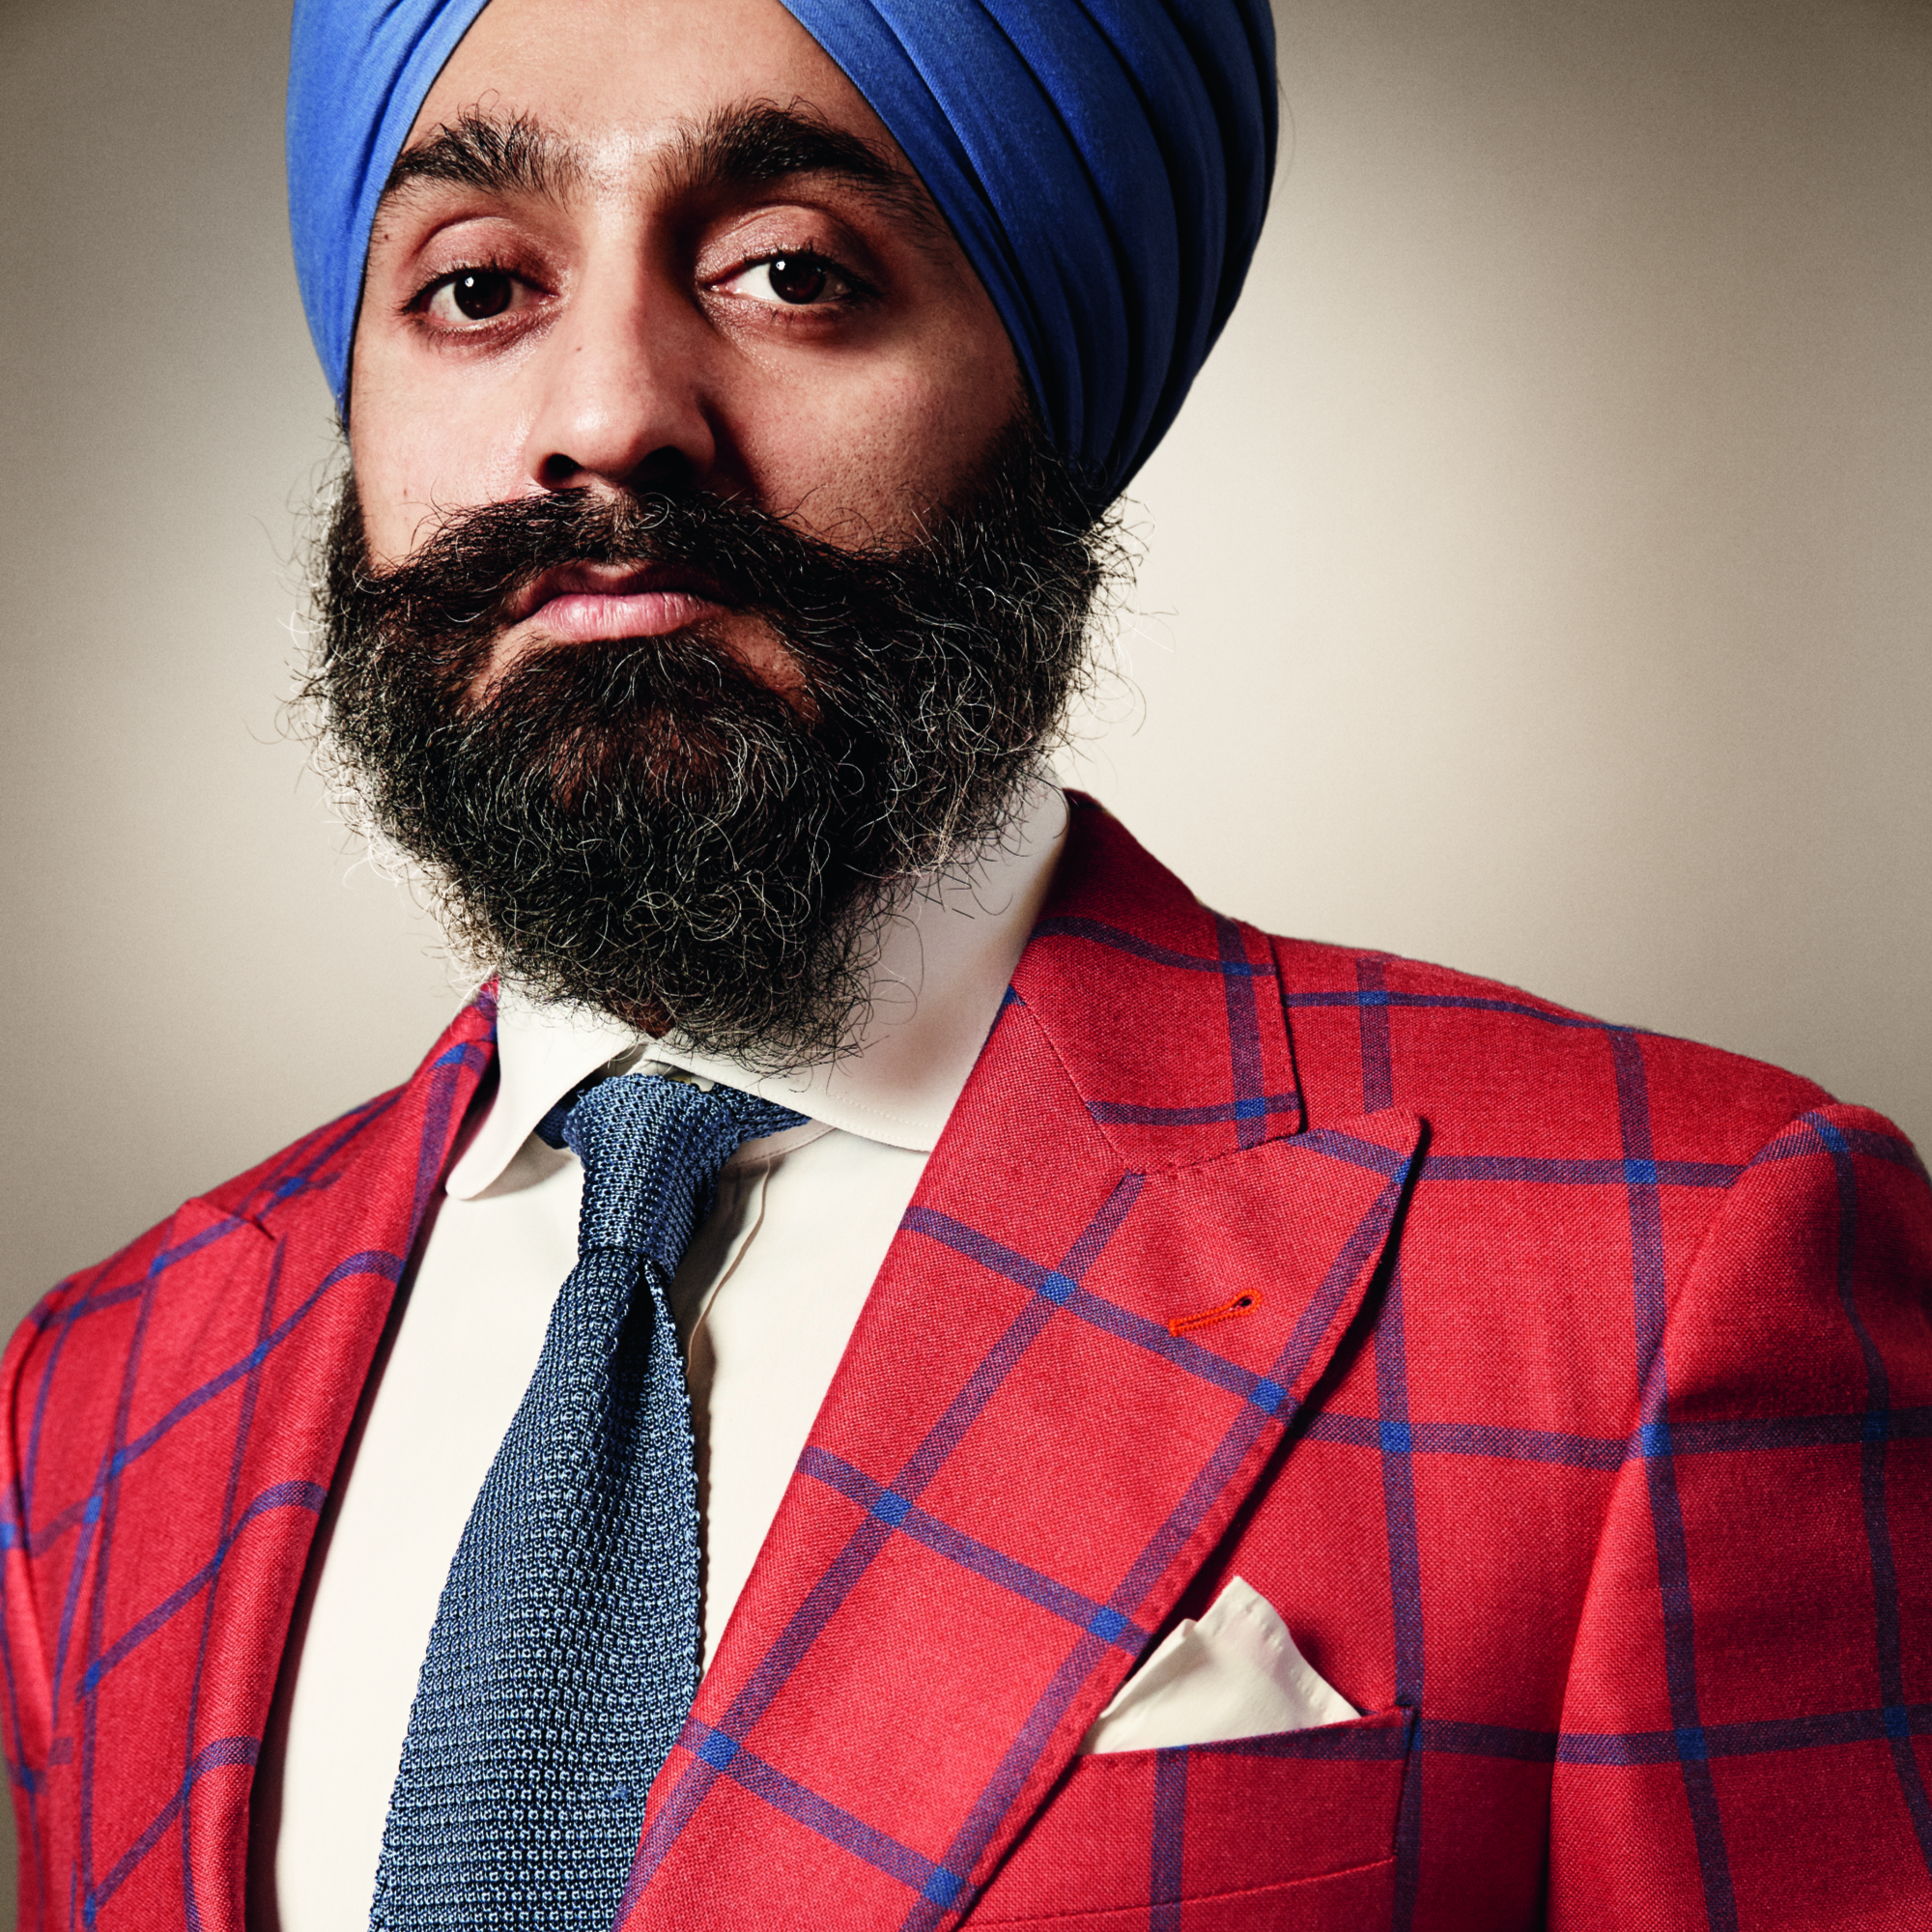 Peter Virdee: The property tycoon on a mission to give something